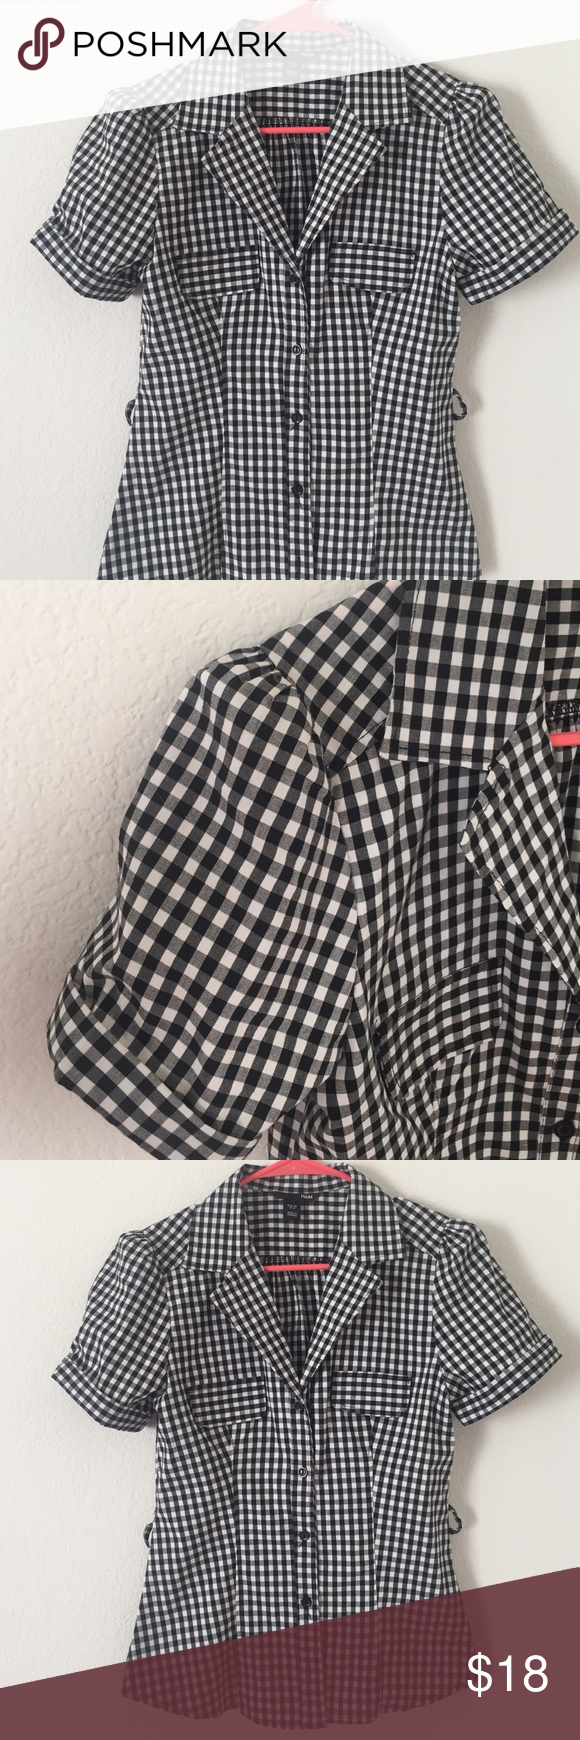 GINGHAM PUFF SLEEVES SHIRT TOP - Pinup Rockabilly New without tags: black/white Gingham button down shirt with puff sleeves. H&M Tops Button Down Shirts